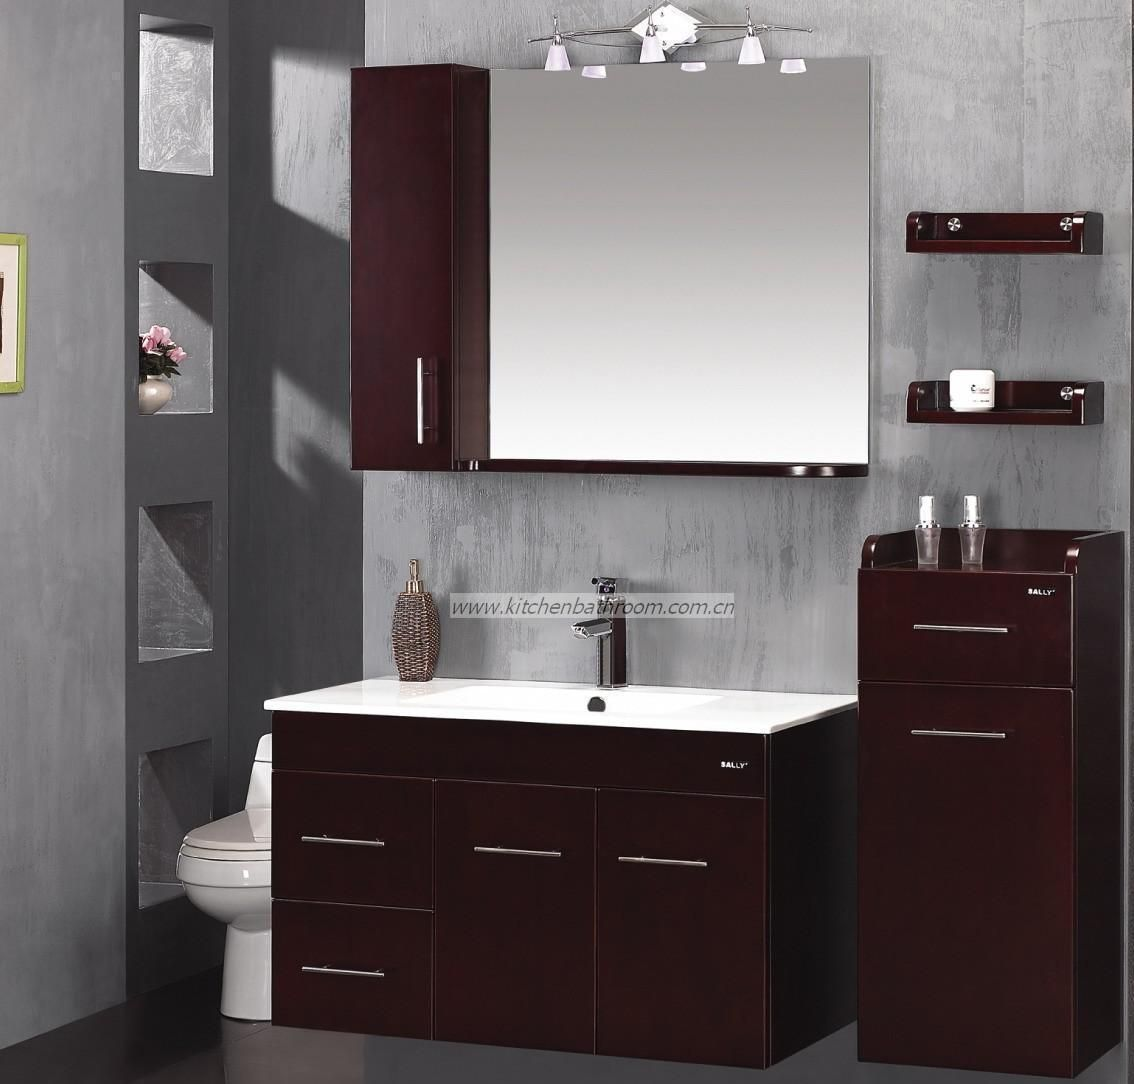 Get The Very Best Bathroom Cabinets For The Vanities That Will